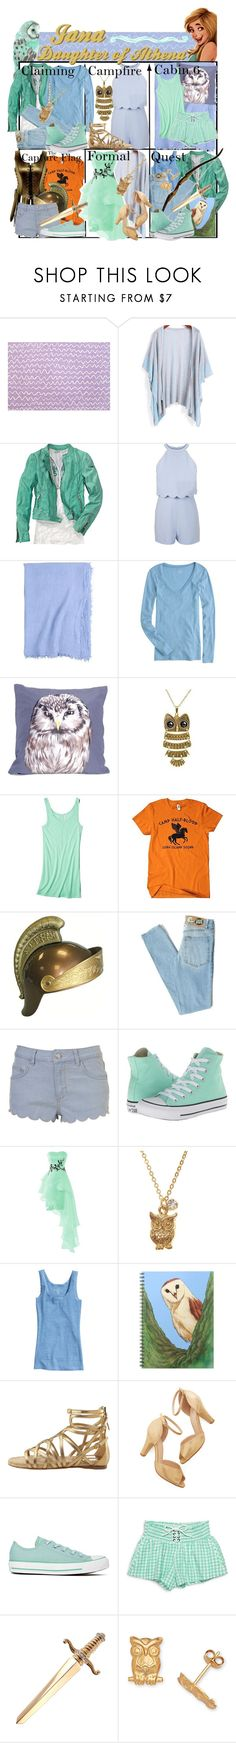 """""""Requested by janabanana23: Jana Daughter of Athena ~ Wardrobe"""" by liesle ❤ liked on Polyvore featuring Designers Guild, Miss Selfridge, Frette, J.Crew, Katie & the Wolf, Mossimo, CO, Cheap Monday, Converse and H&M"""